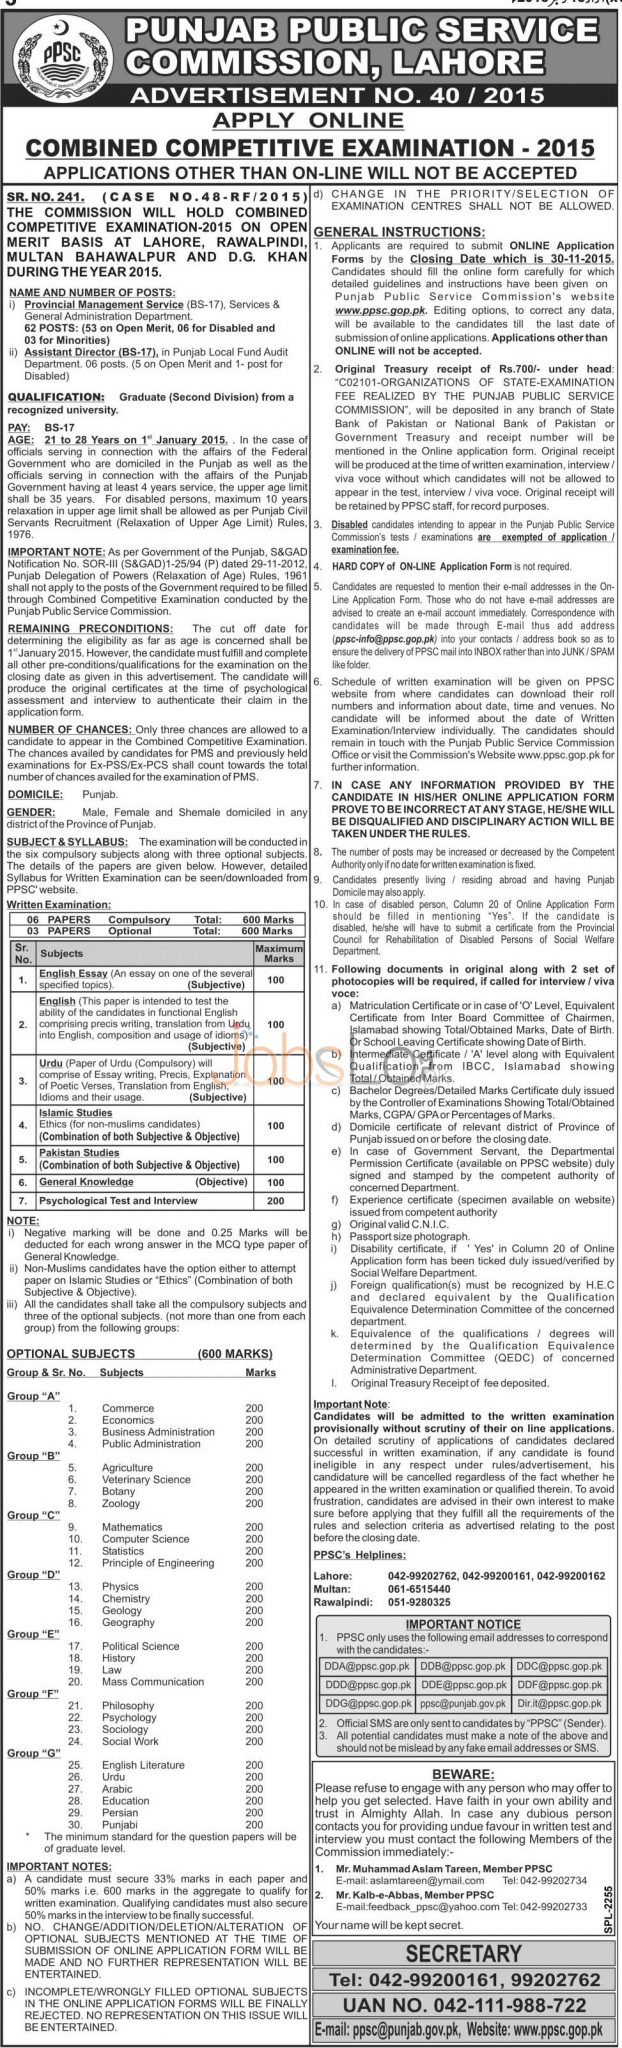 PPSC Jobs November 2015 Combined Competitive Examination Test Date